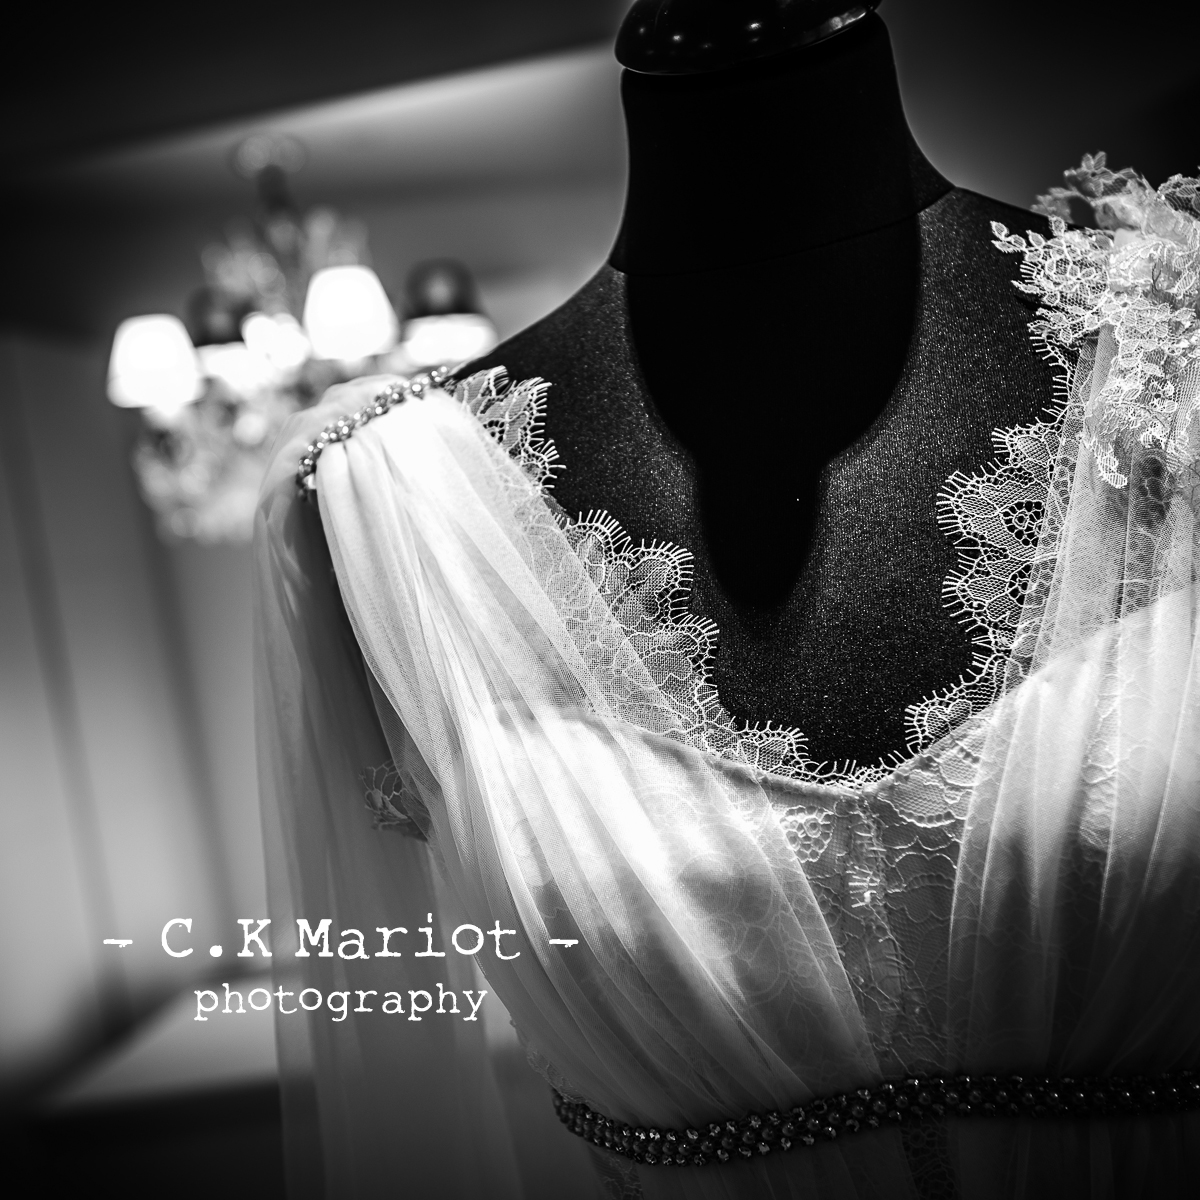 CK-Mariot-Photography-black-1581